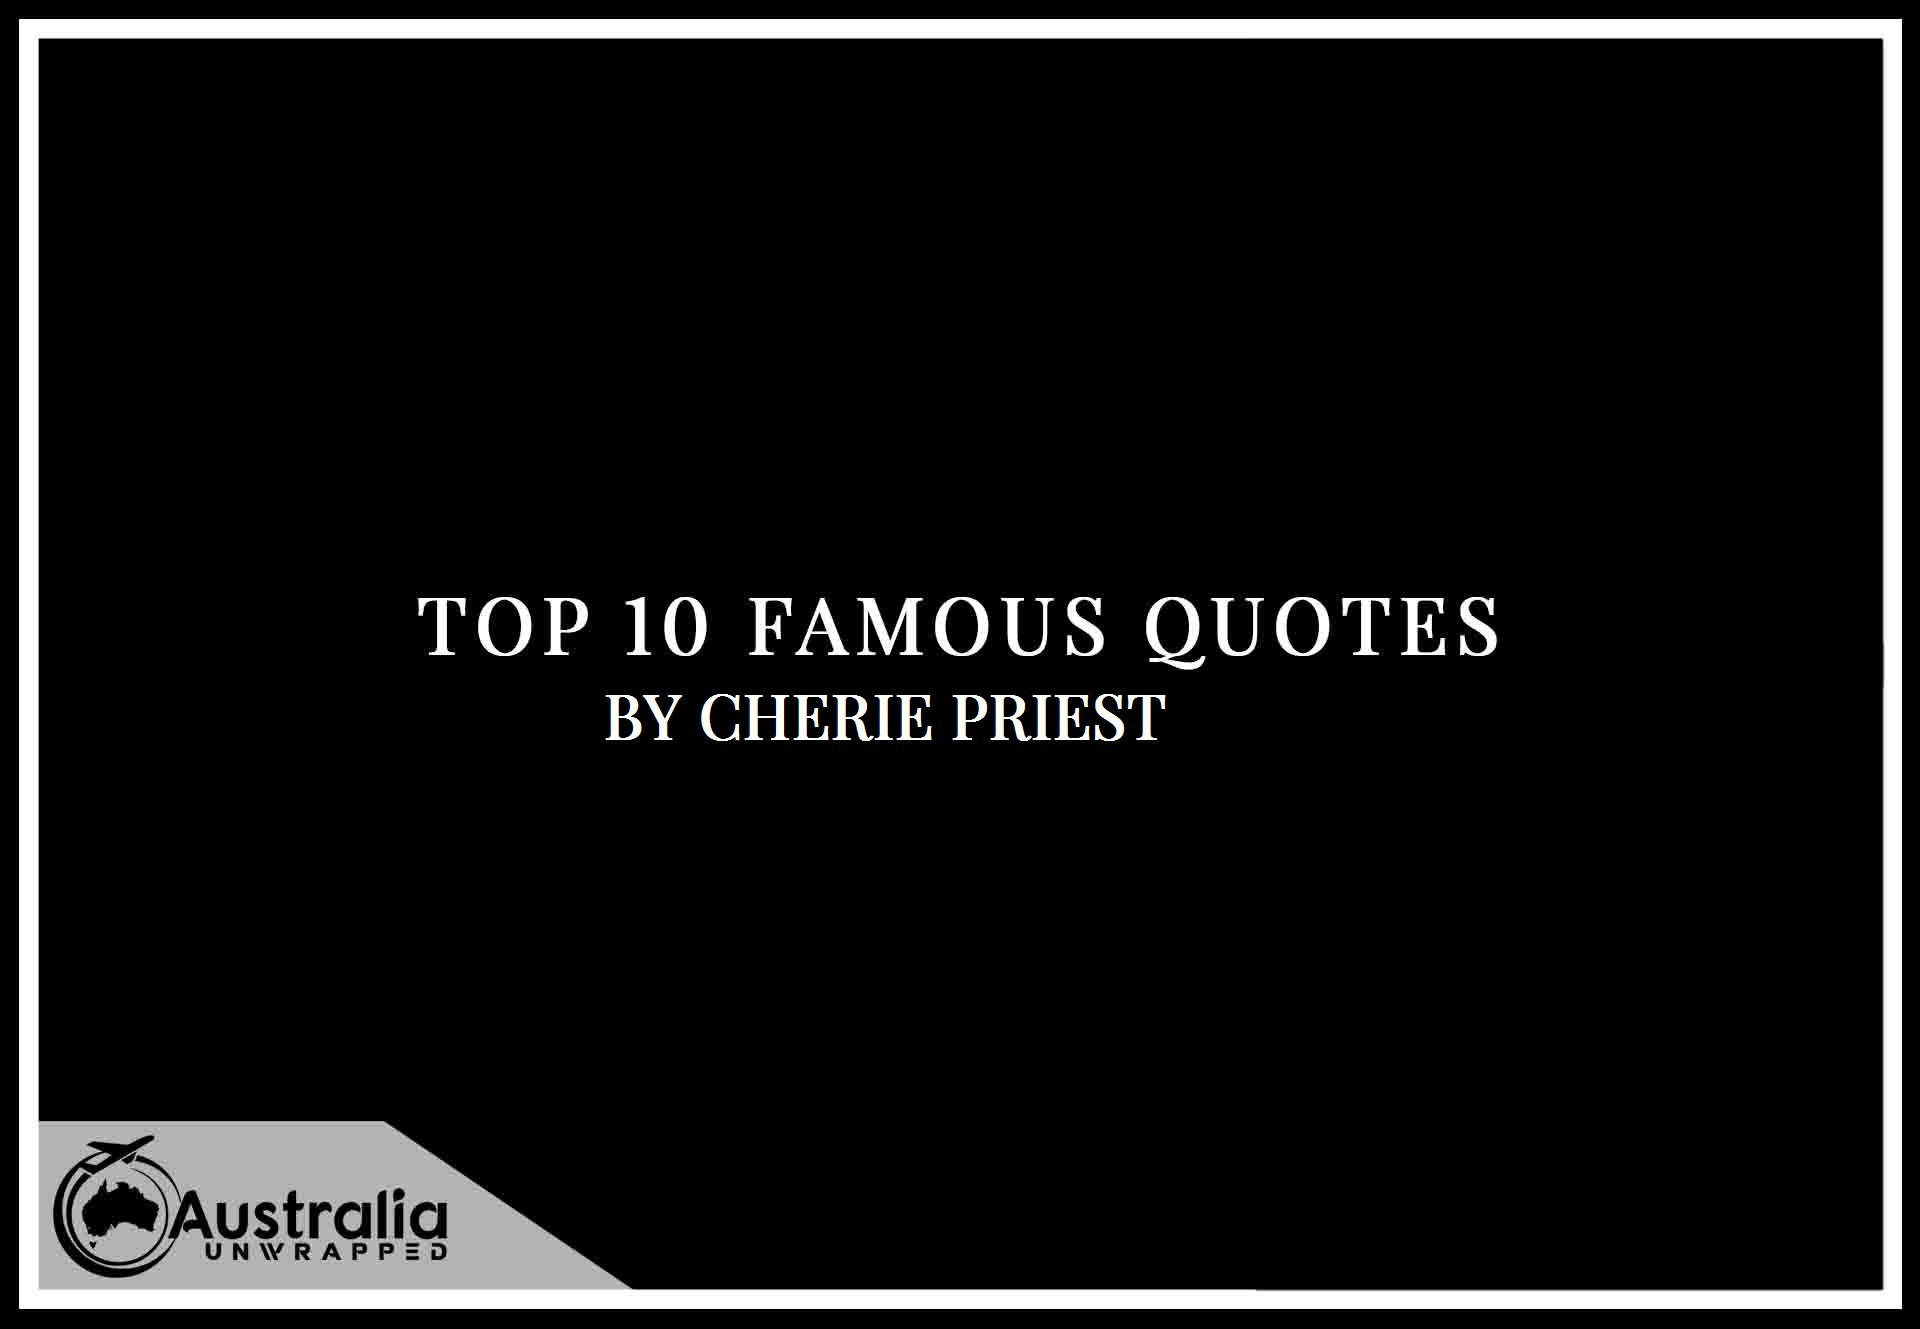 Cherie Priest's Top 10 Popular and Famous Quotes